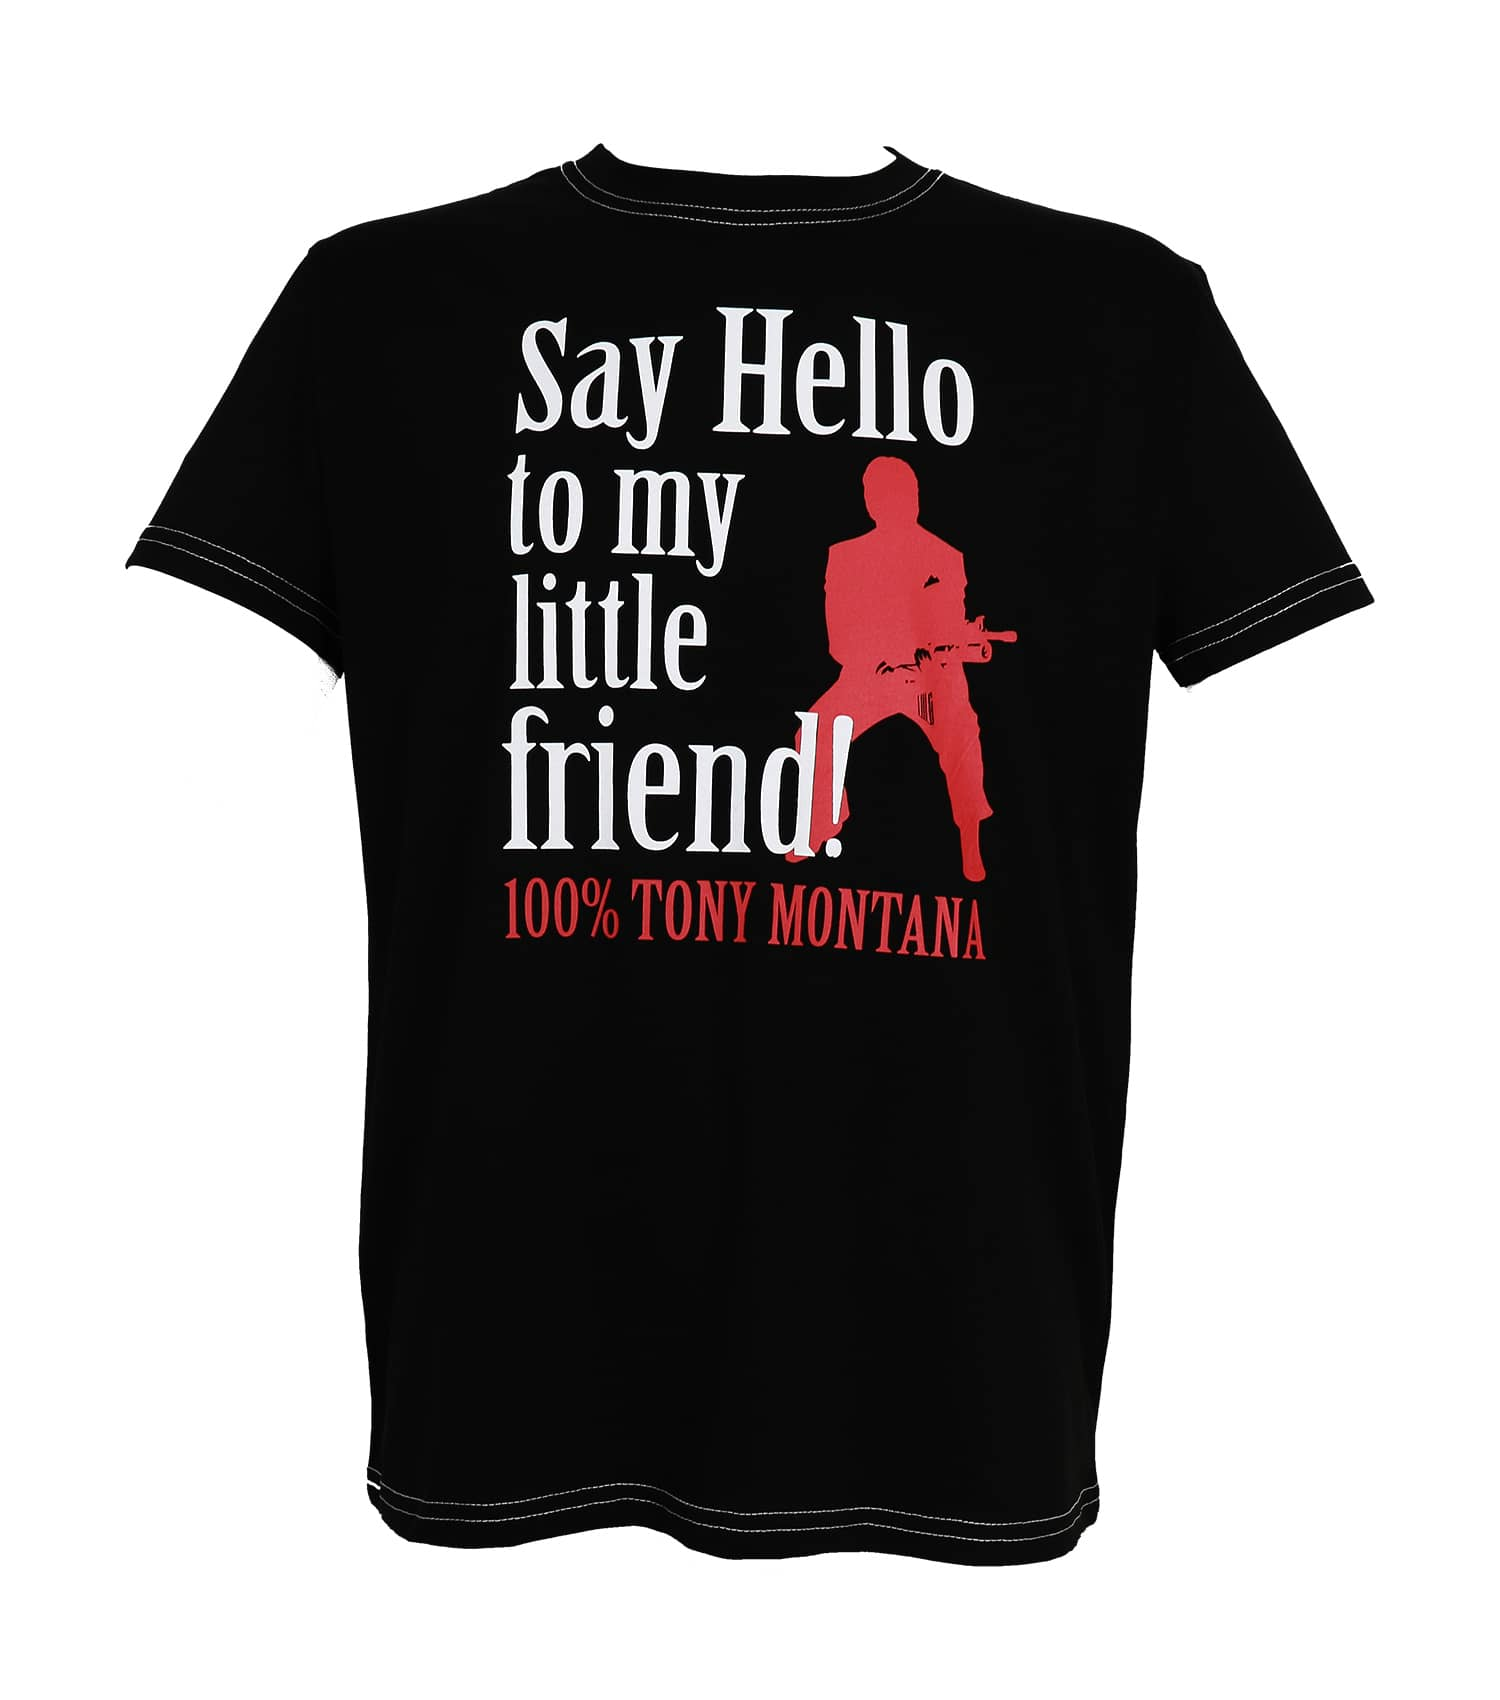 SAY HELLO CAMISETA NEGRA CHICO T-S SCARFACE